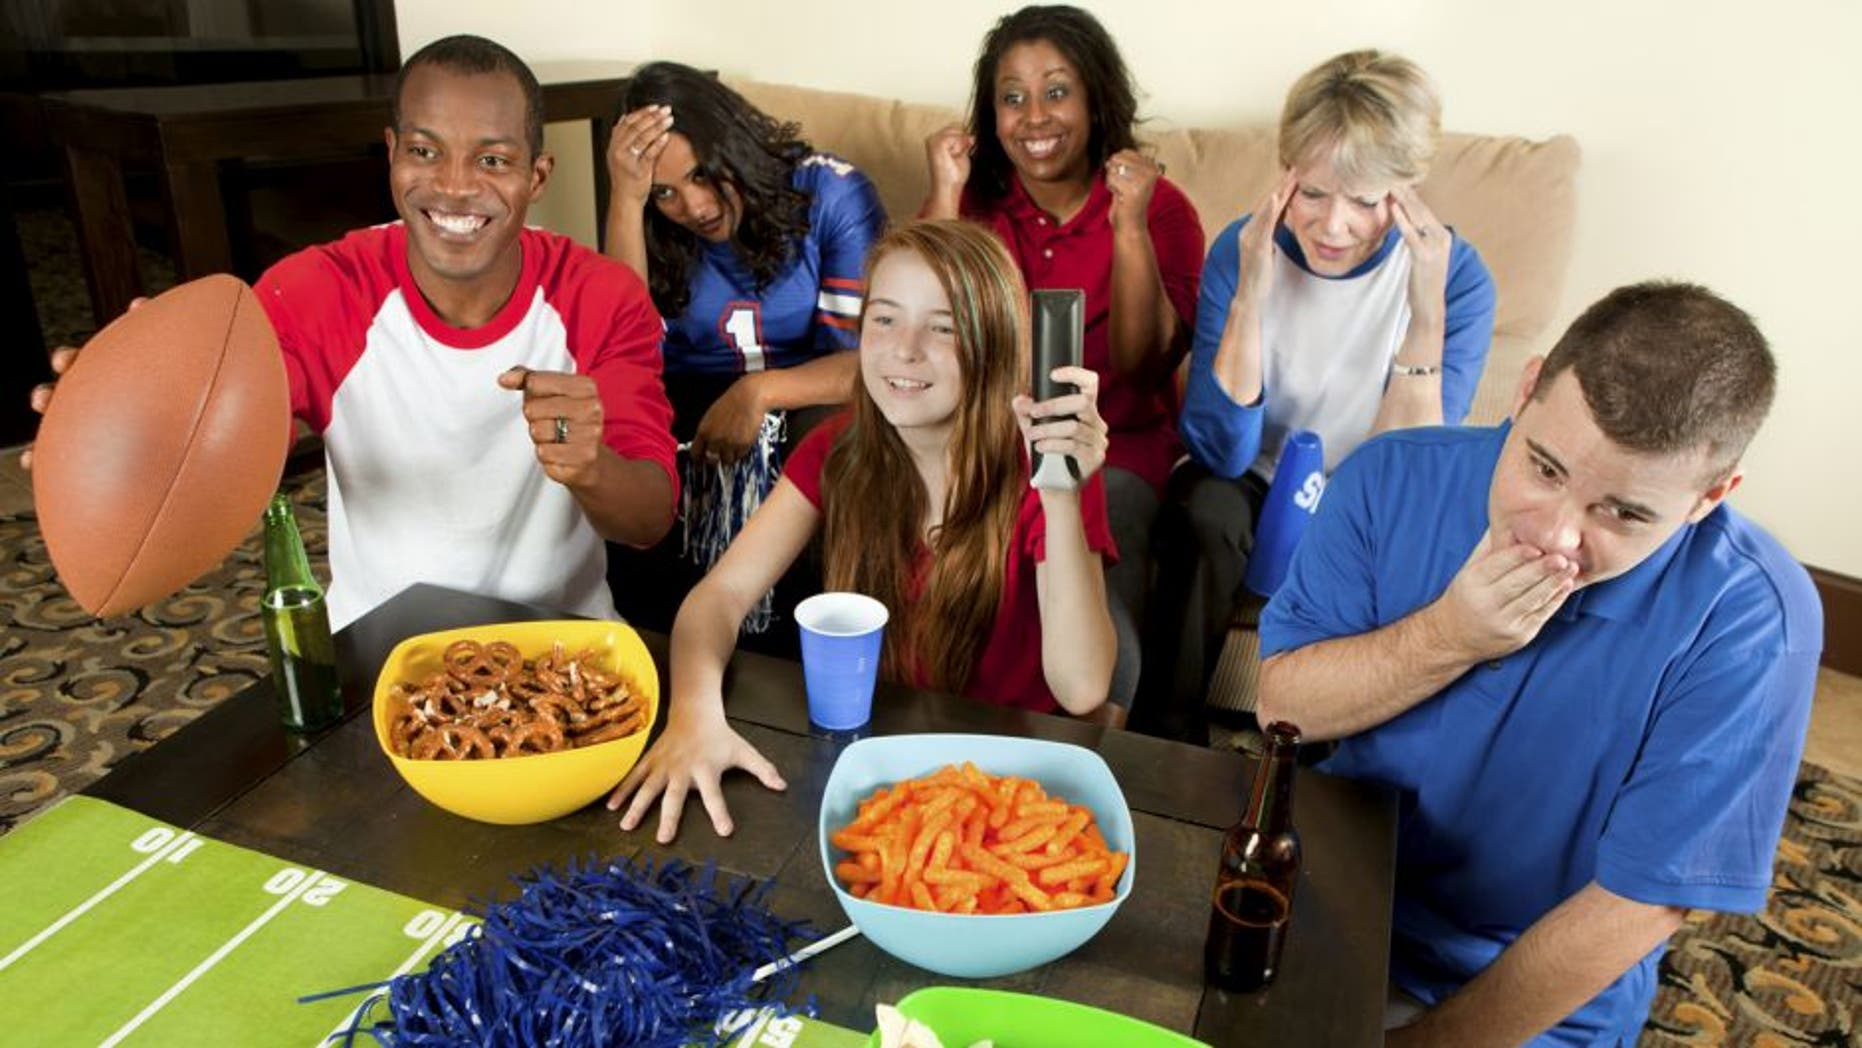 Diverse Group of Family and Friends Watching a Football Game